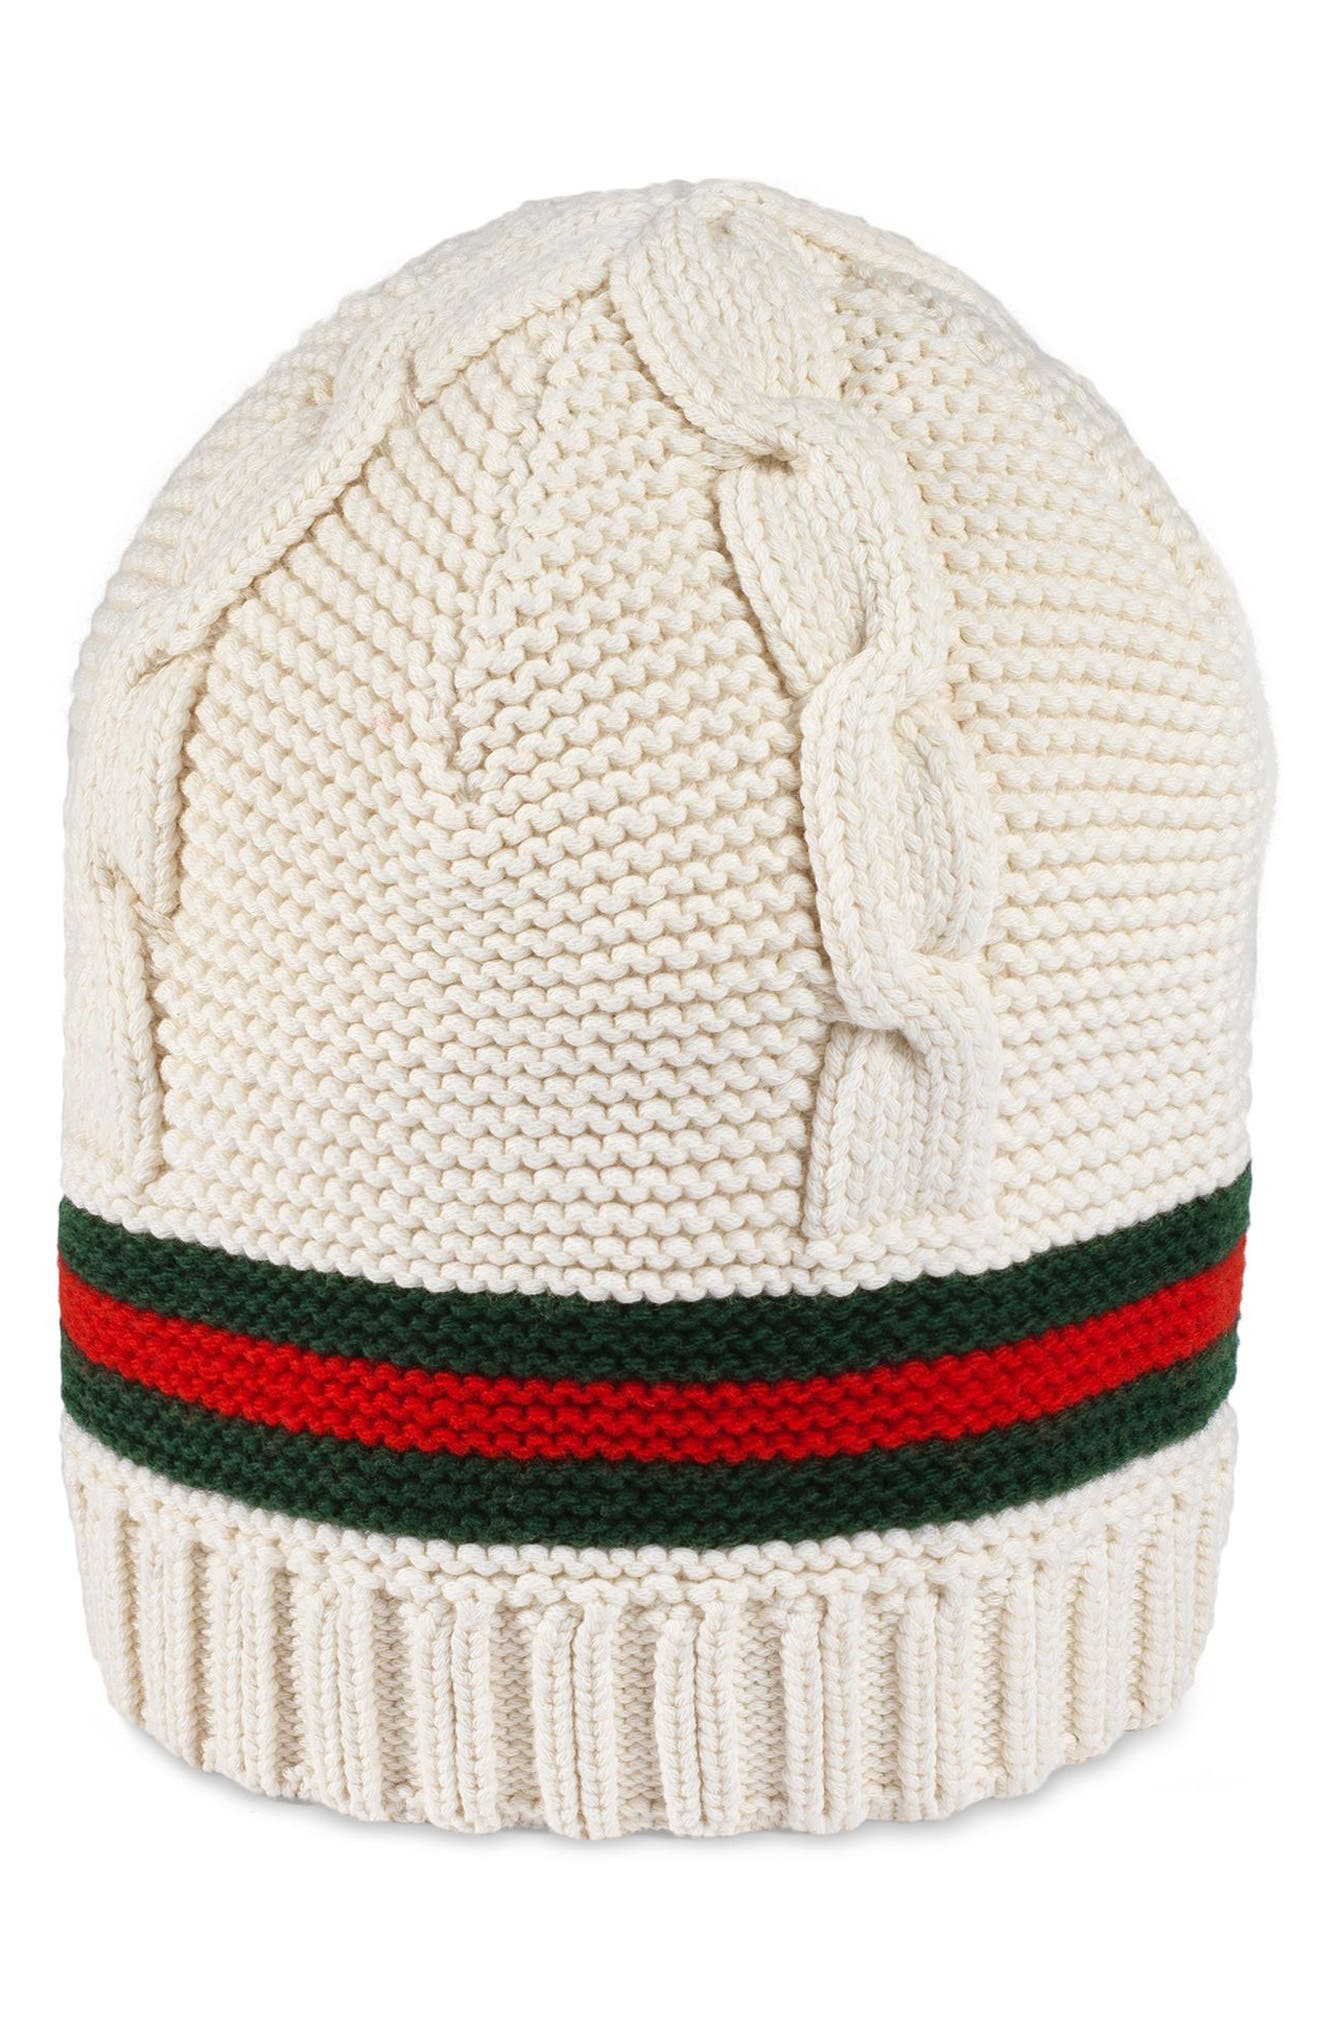 Liom Cable Knit Beanie,                         Main,                         color, White/ Dark Green